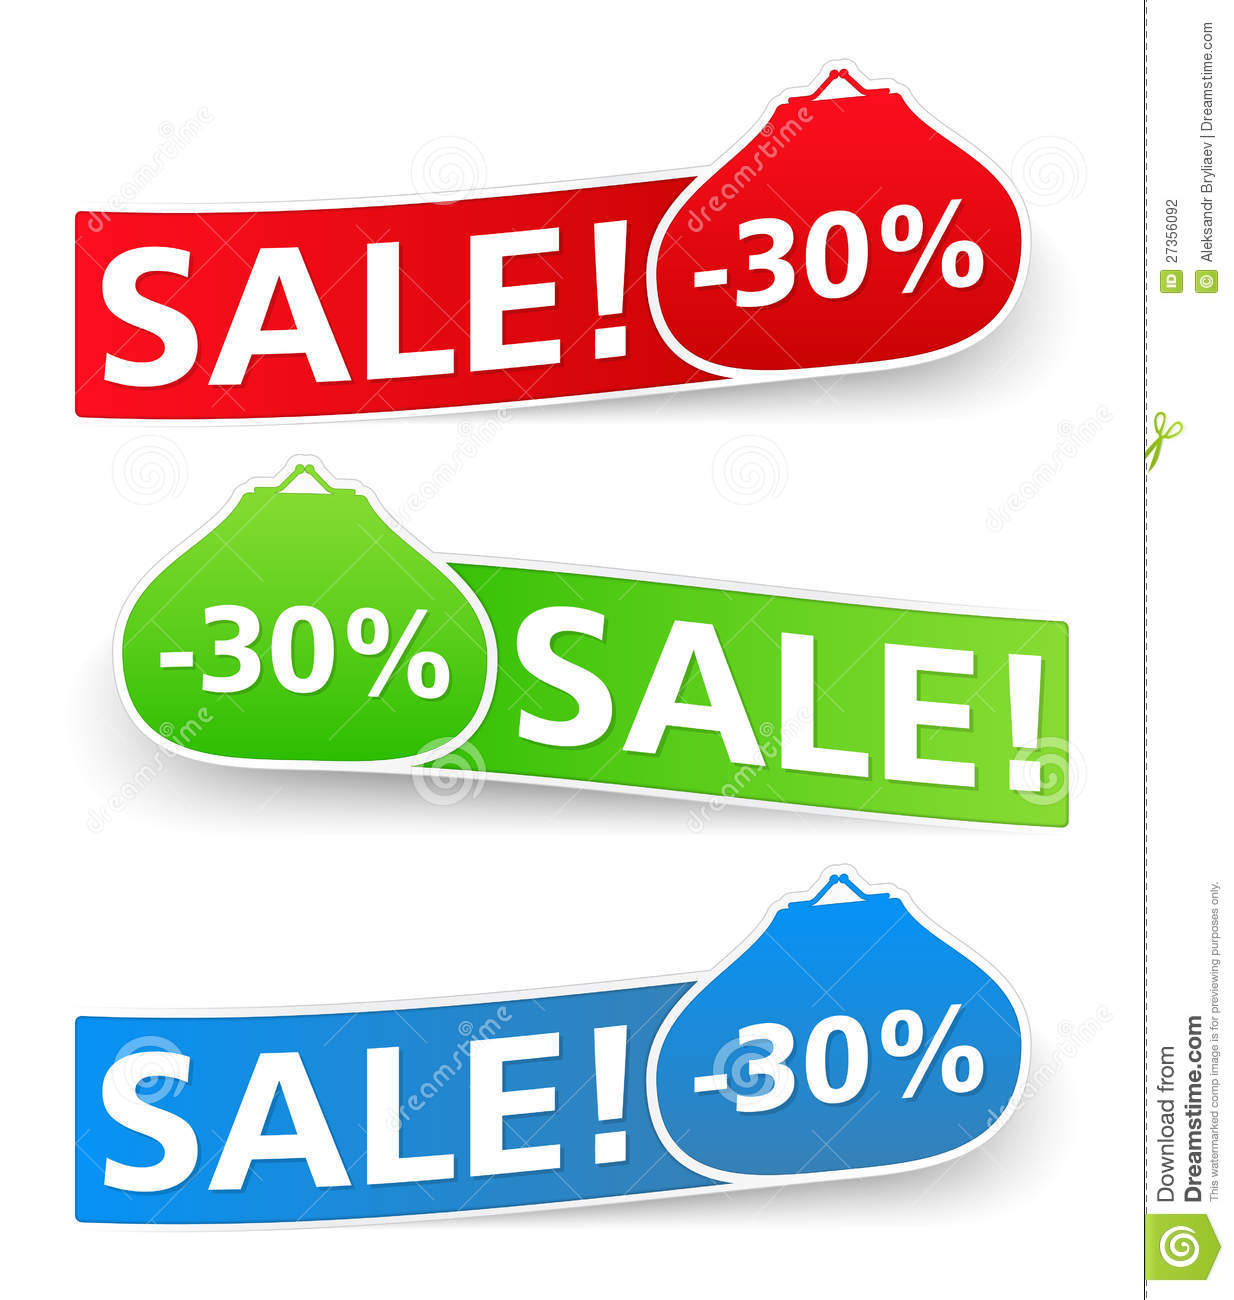 Sale Banners Stock Photography - Image: 27356092